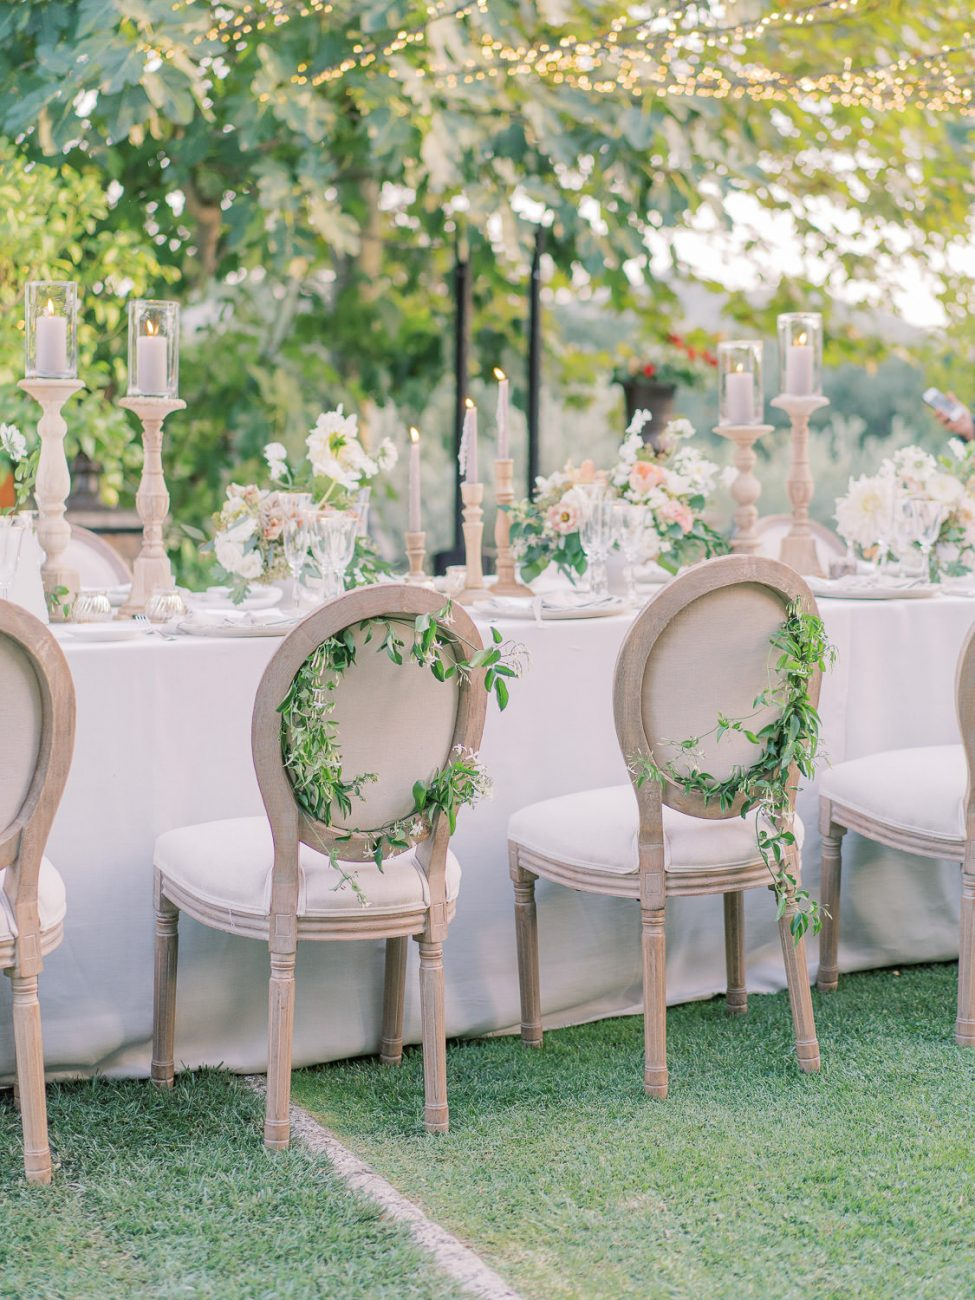 wedding-tablesetting-borgo-santo-pietro-corbin-gurkin-LauraBraviEvents-La-RosaCaninaFirenze-decorated chairs